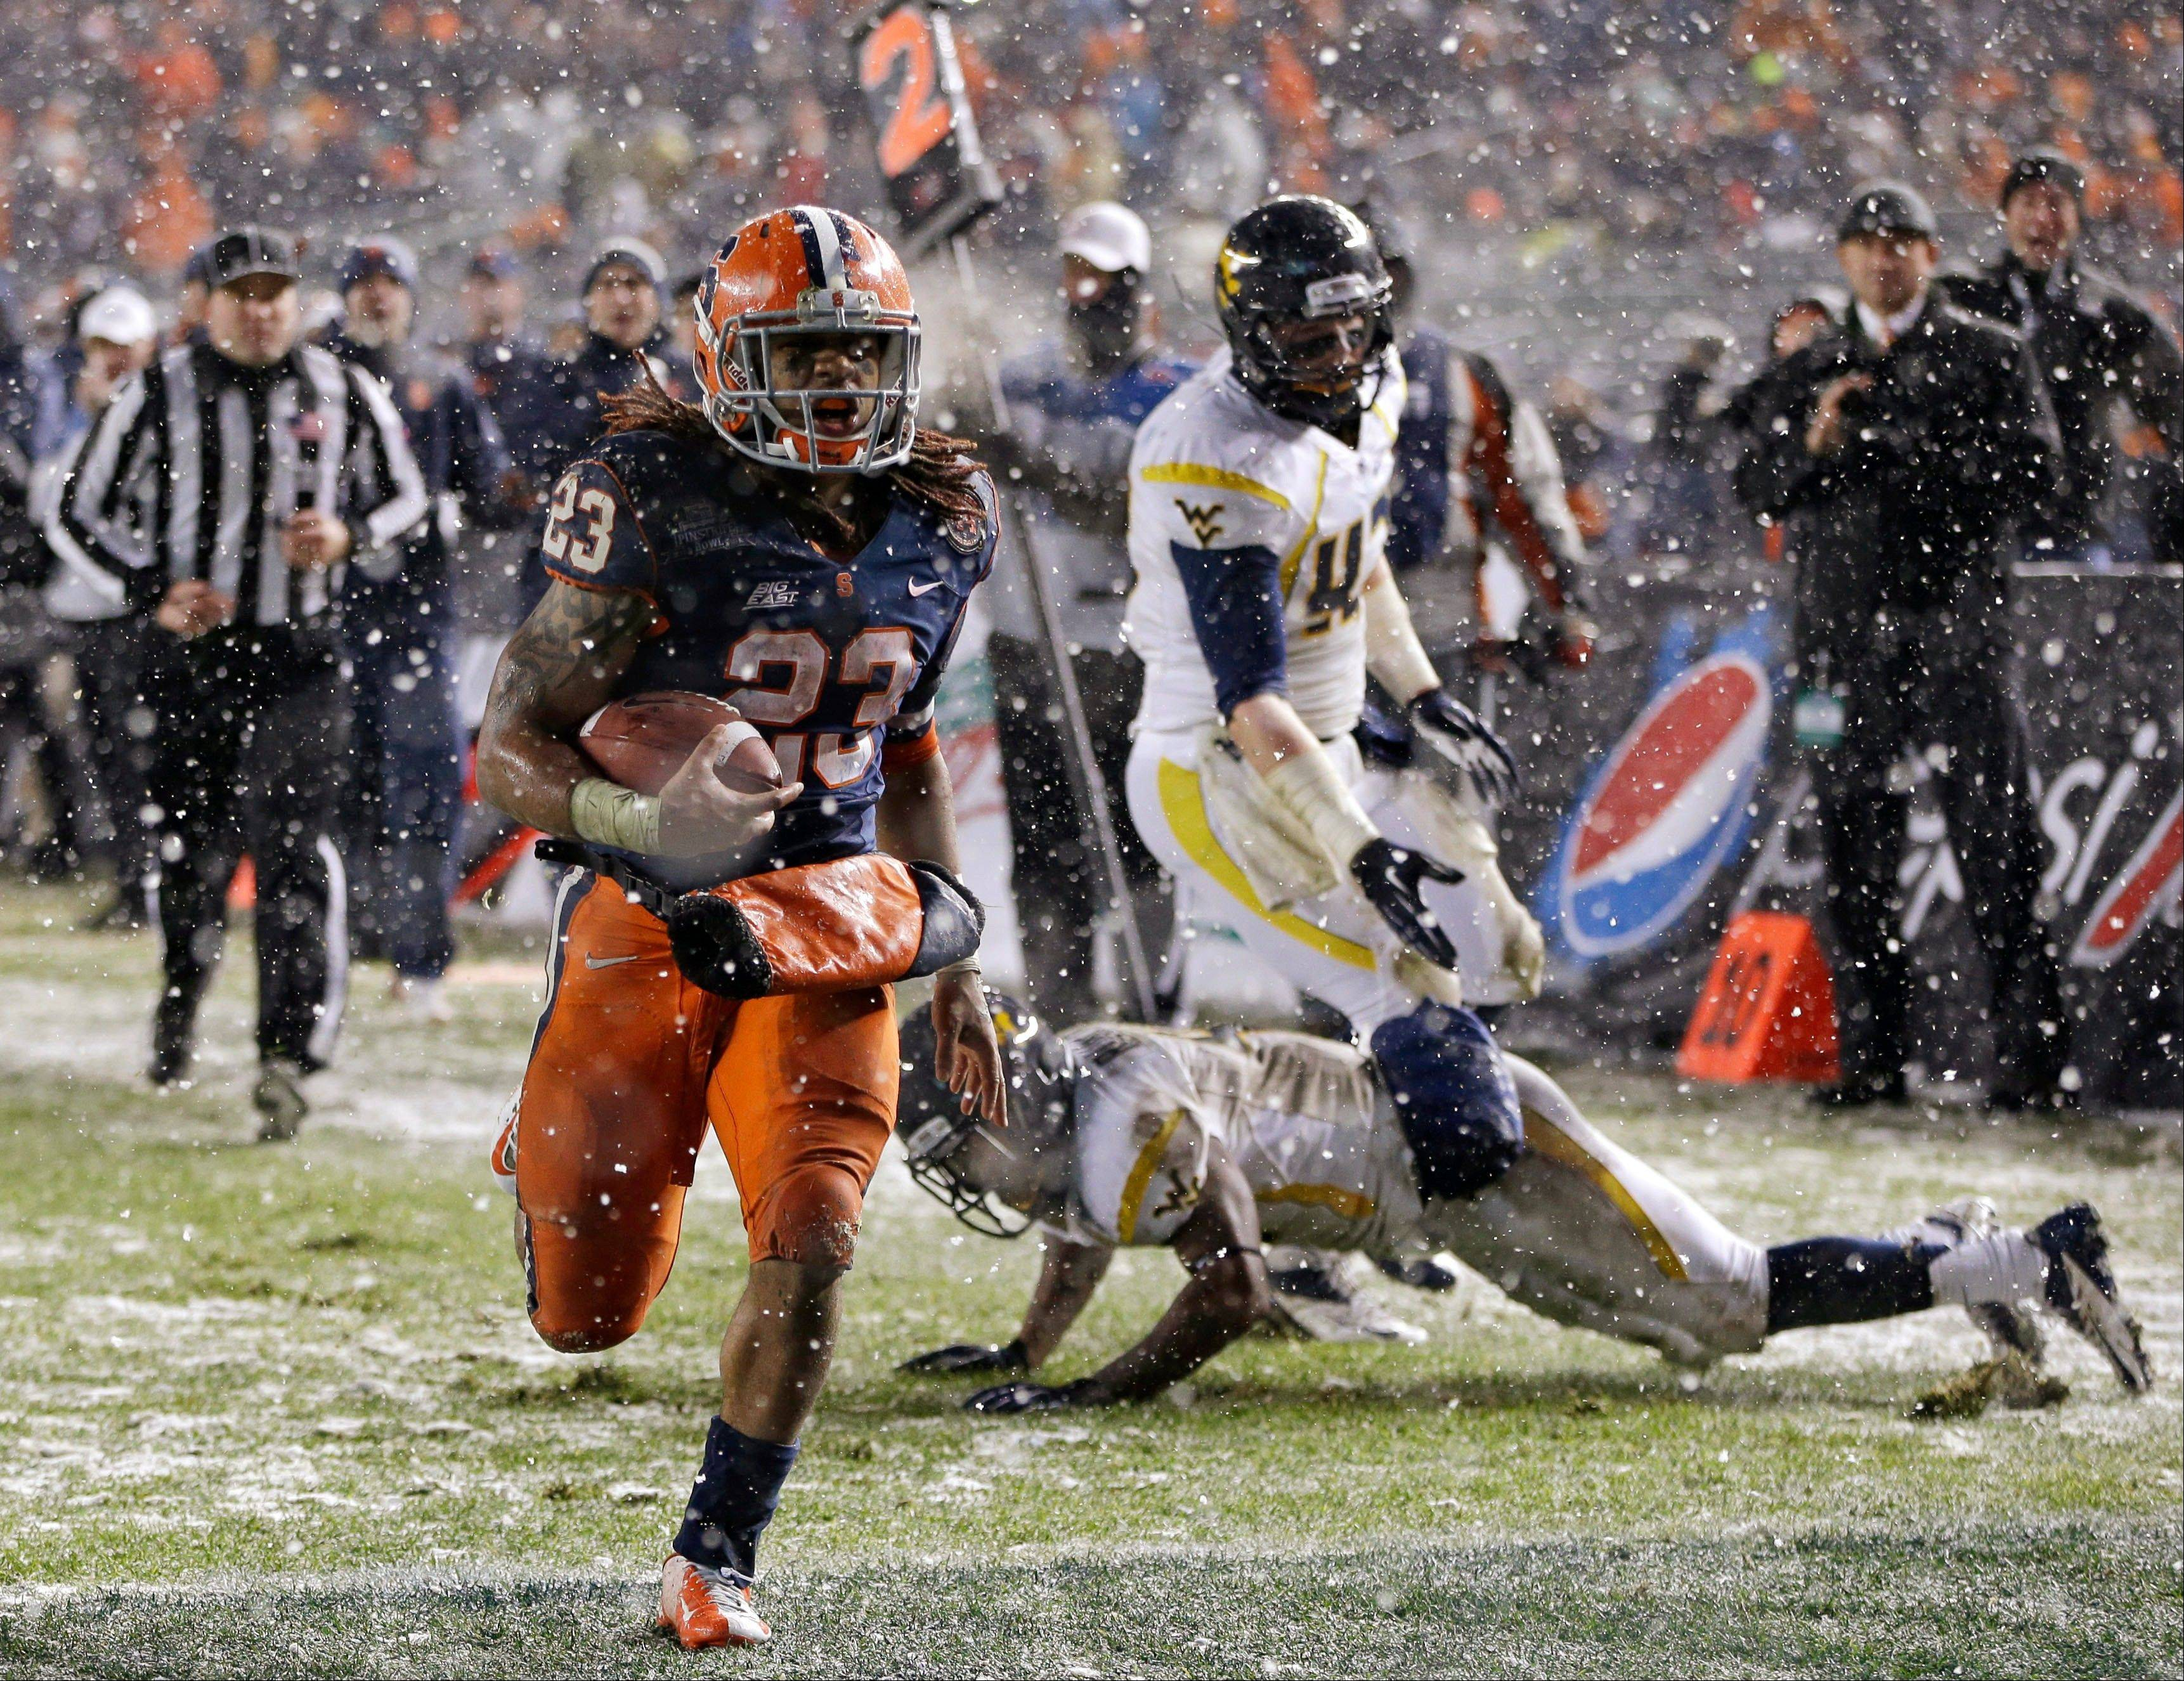 Syracuse running back Prince-Tyson Gulley (23) scores a touchdown, leaving West Virginia defenders in his wake during the third quarter of the Pinstripe Bowl NCAA college football game at Yankee Stadium in New York, Saturday, Dec. 29, 2012. Sryacuse won 38-14. (AP Photo/Kathy Willens)